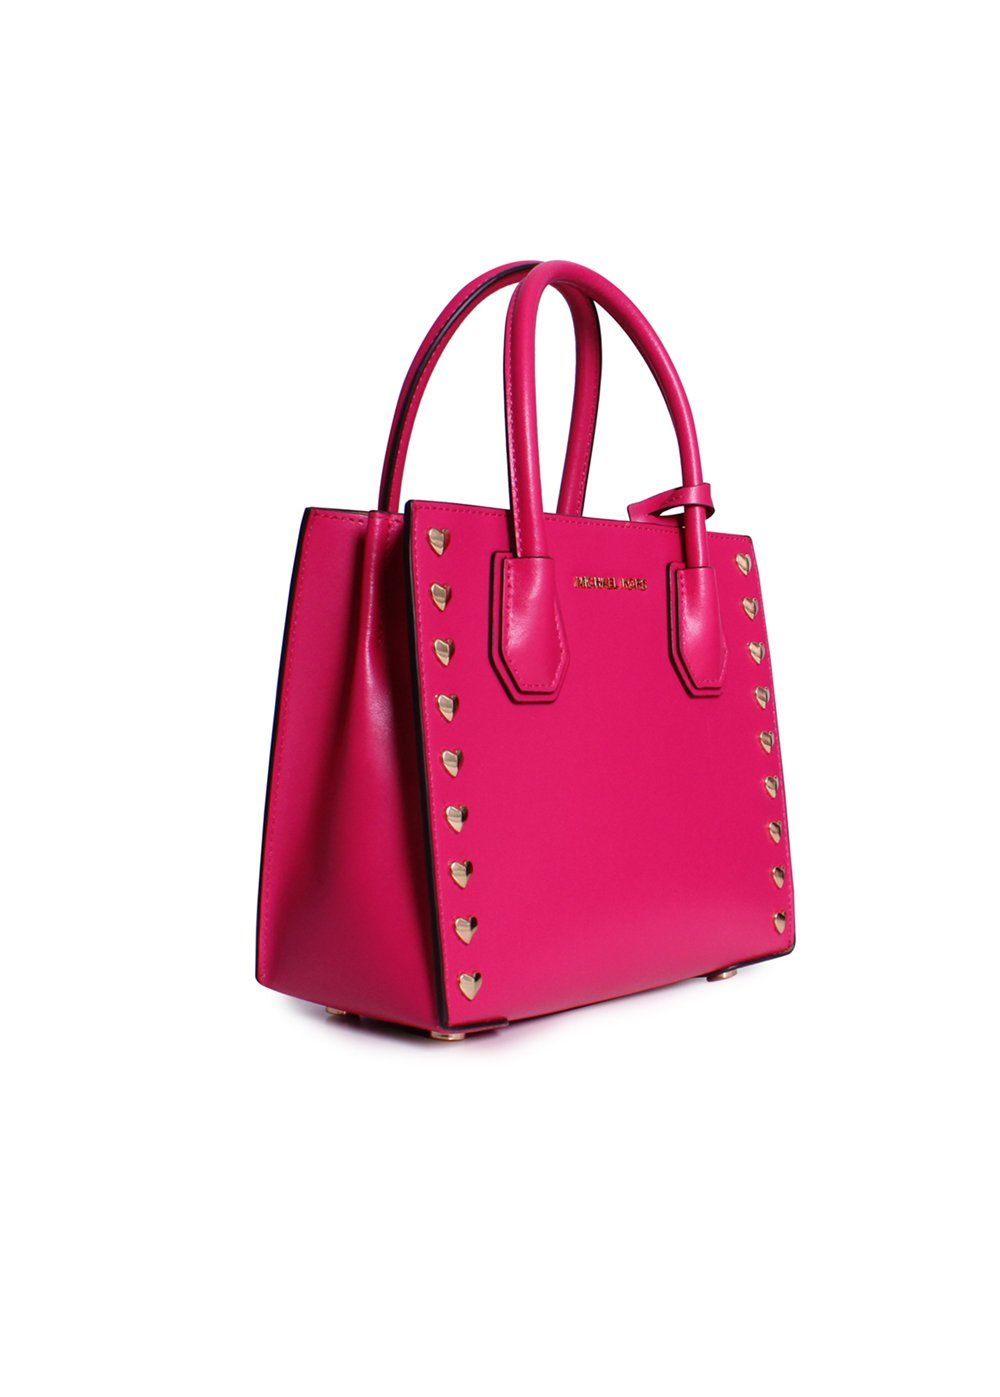 6f8890346f5c Michael Kors Mercer Medium Heart Studded Messenger Bag Ultra Pink *** Be  sure to check out this awesome product. (This is an affiliate link) 0